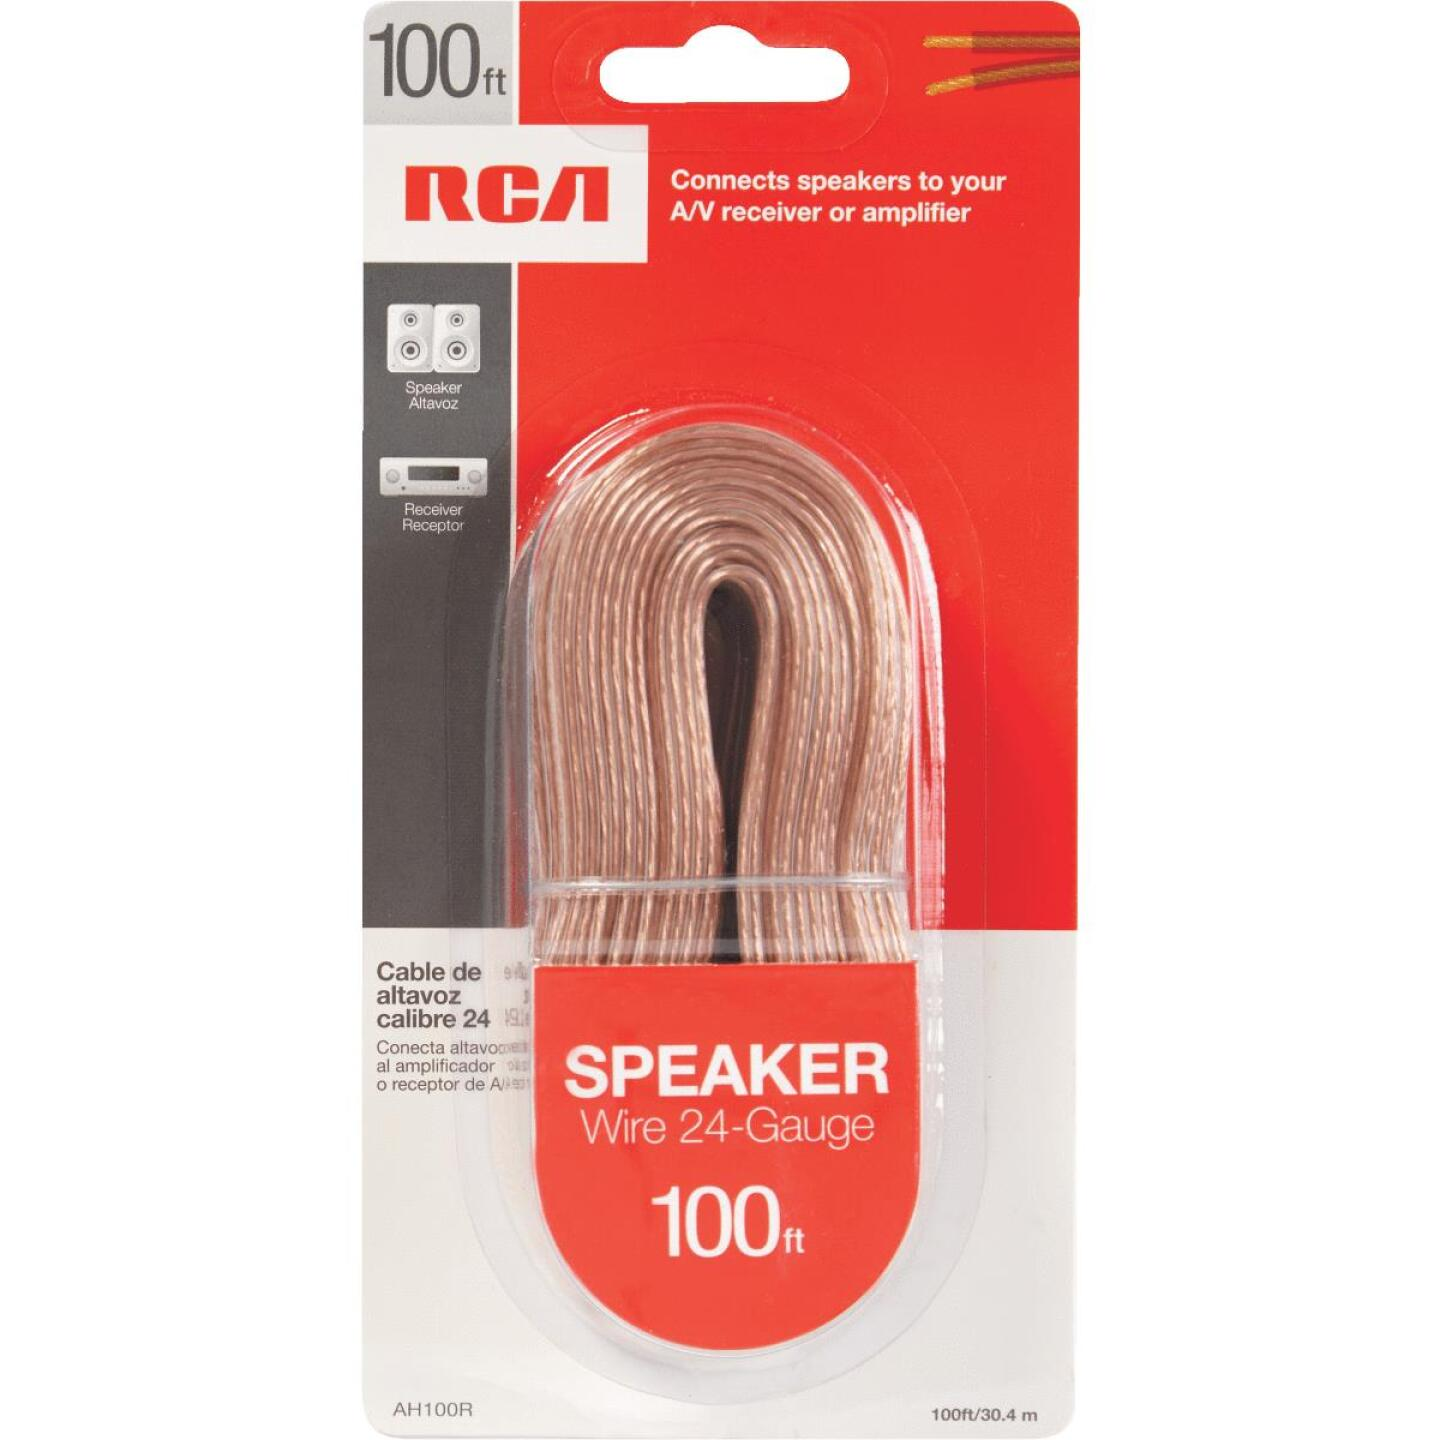 RCA 100 Ft. 24-2 Stranded Speaker Wire Image 3